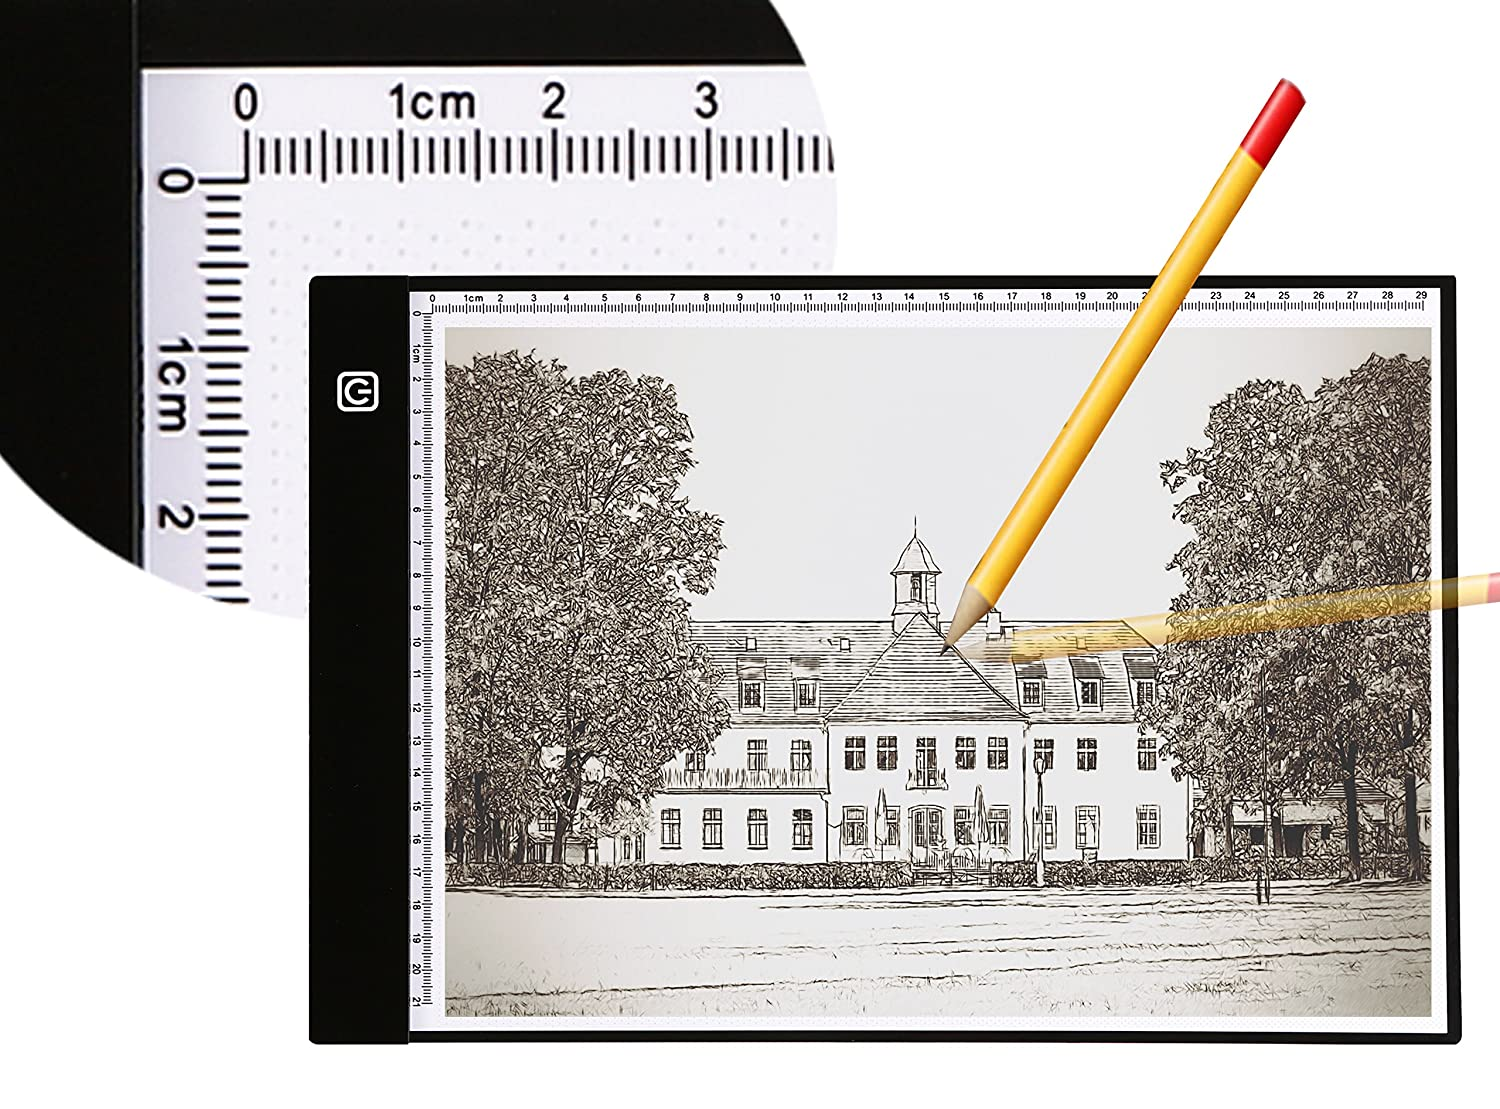 A4 Ultra-Thin Portable LED Light Box Tracer USB Power Cable Dimmable Brightness Artcraft Tracing Light Pad Light Box w Two Way Ruler forArtists Drawing Sketching Animation Designing Stencilling